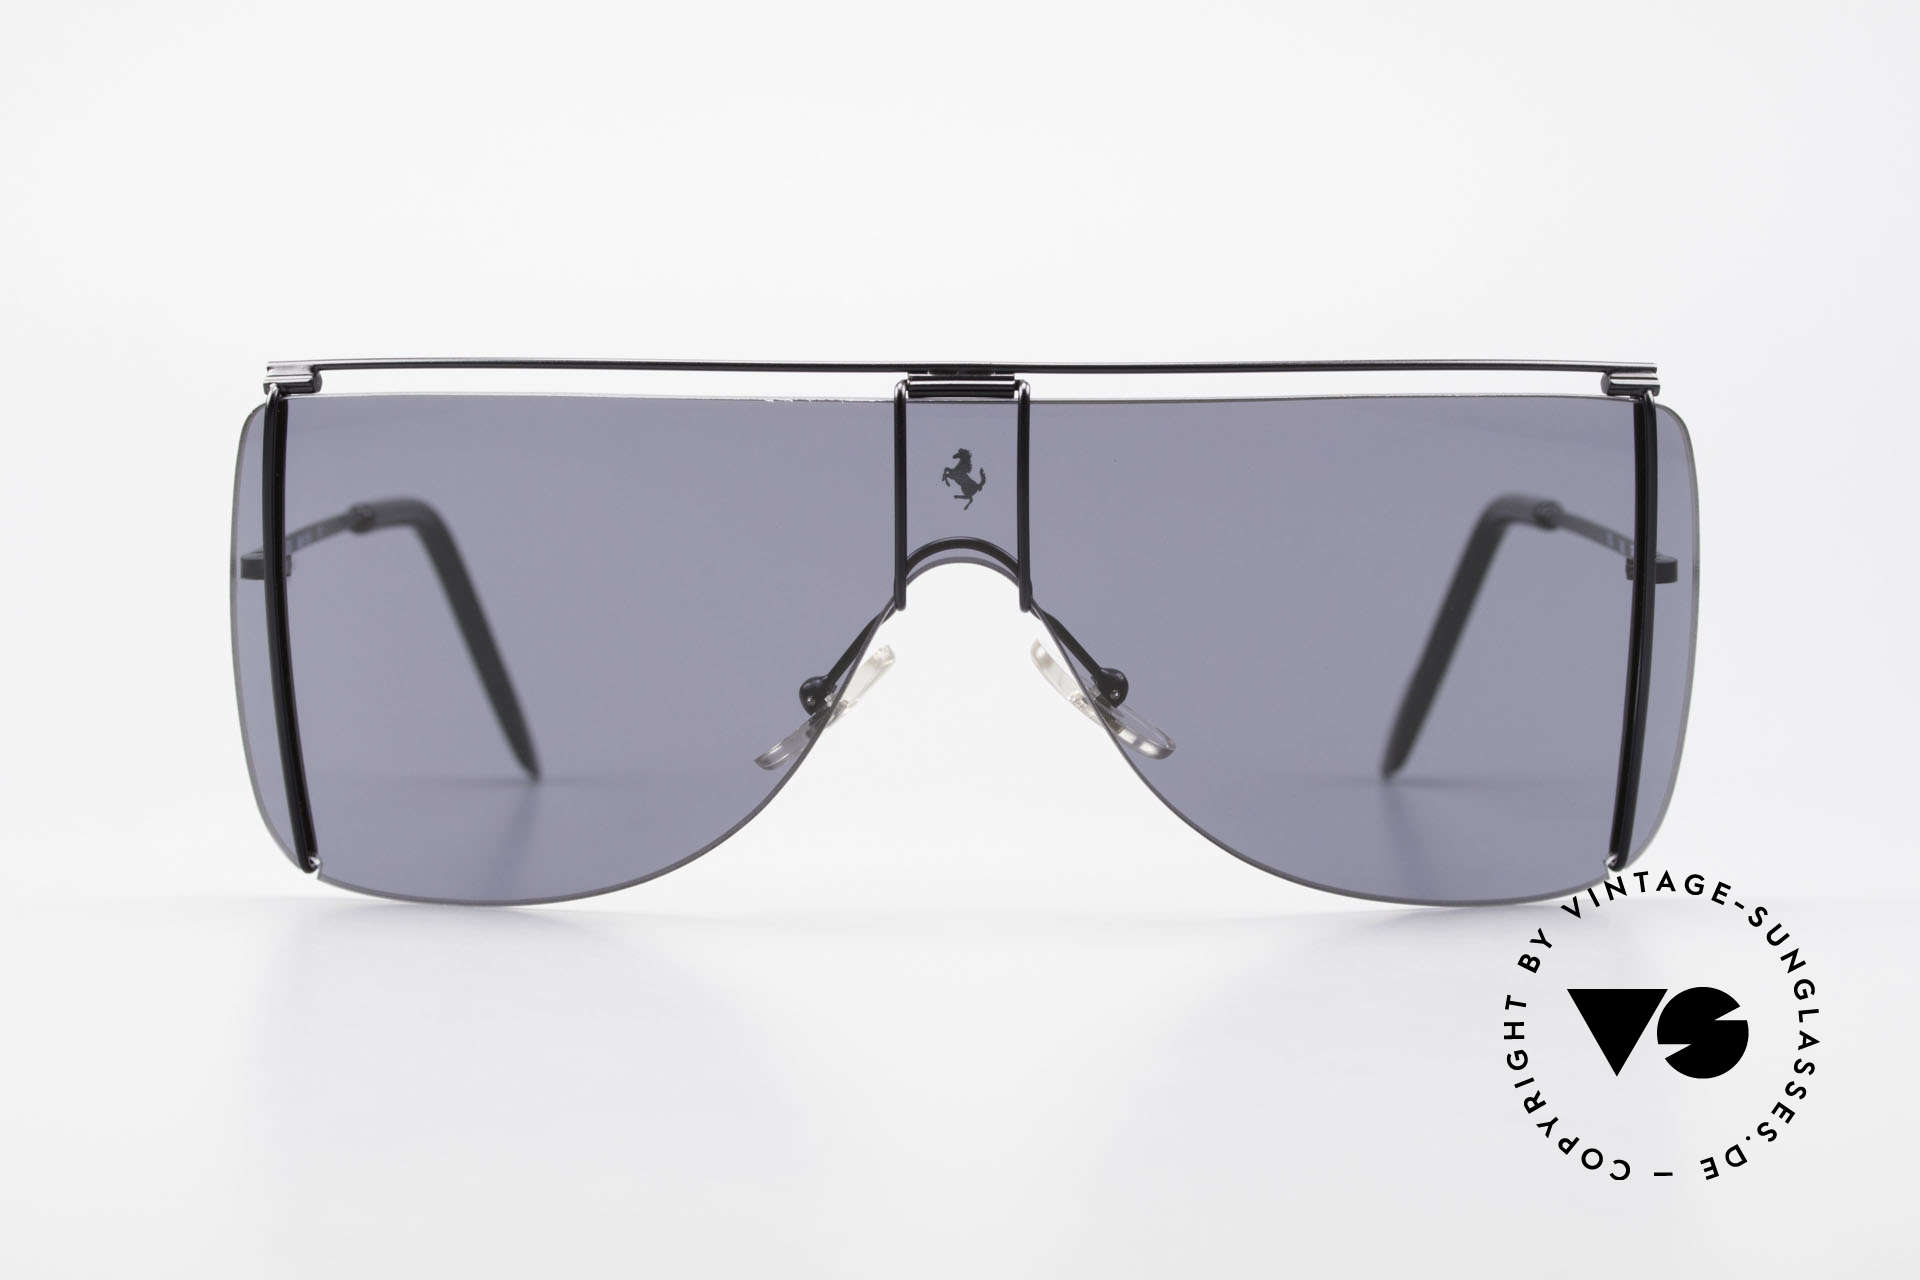 Ferrari F20/S Luxury Sunglasses Kylie Jenner, panorama view design with only one single lens, Made for Men and Women